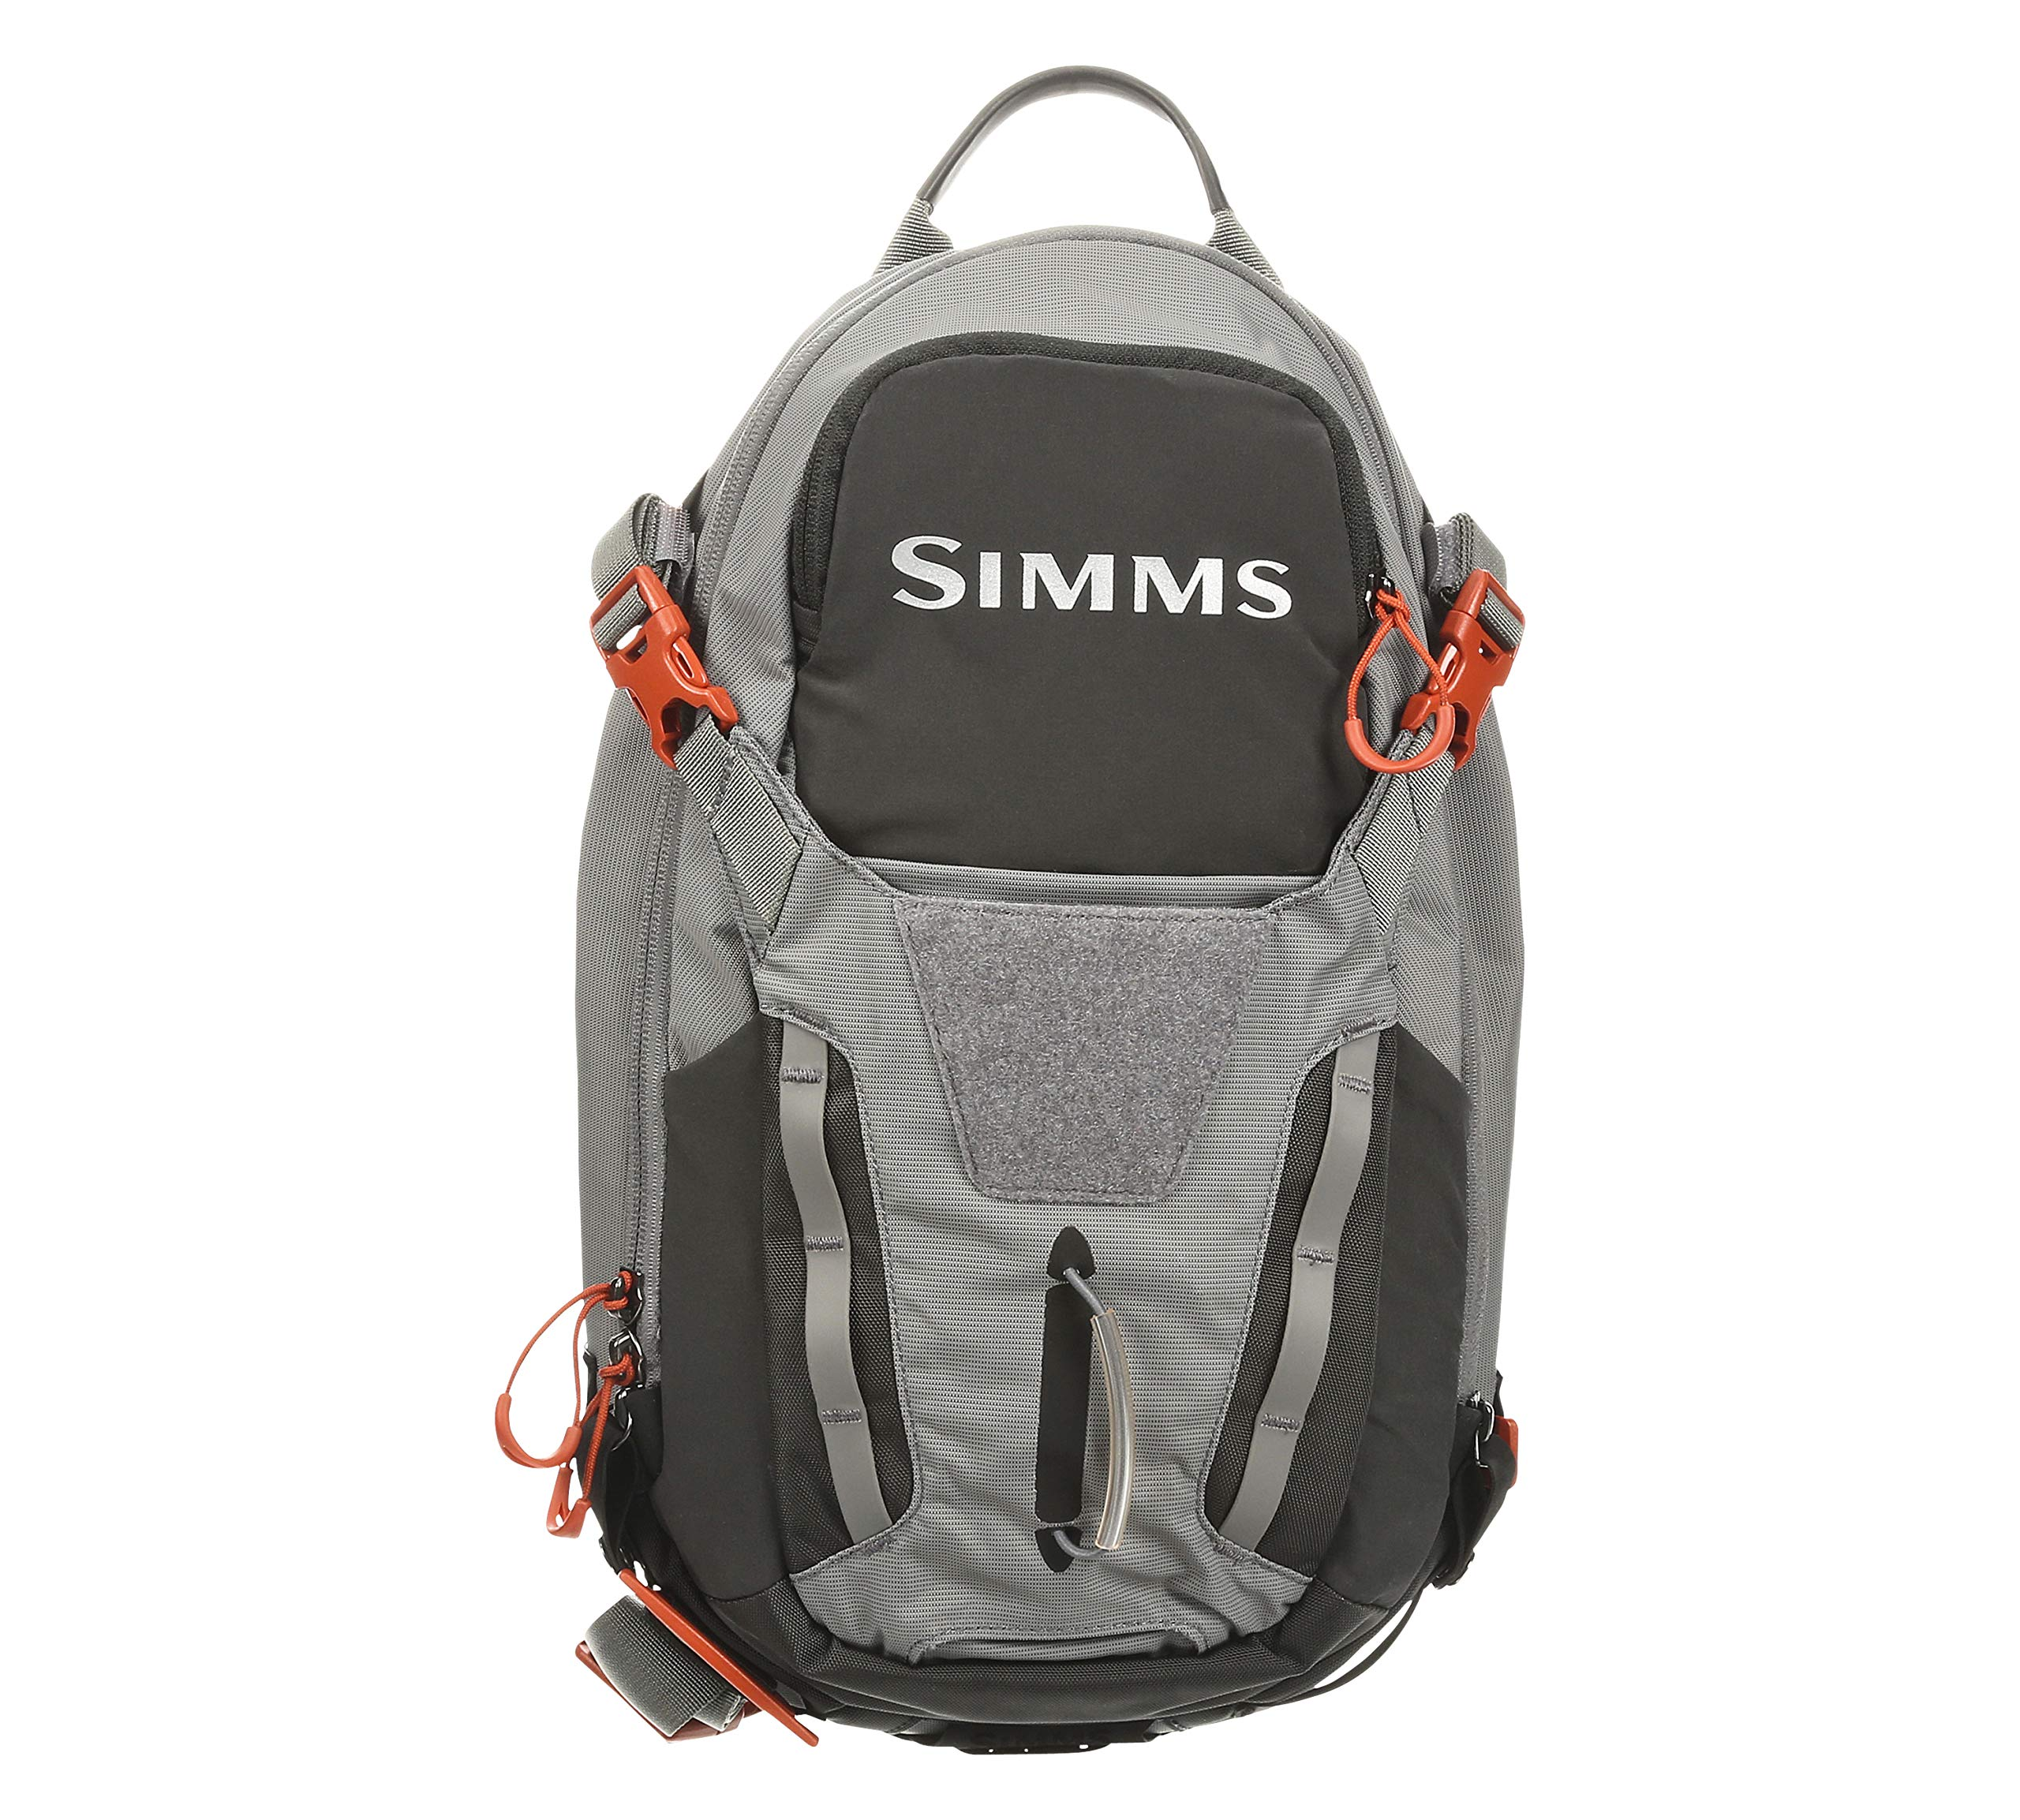 Simms Freestone Ambidextrous Tactical Fishing Sling Pack, Single Shoulder Back Pack, Right Or Left